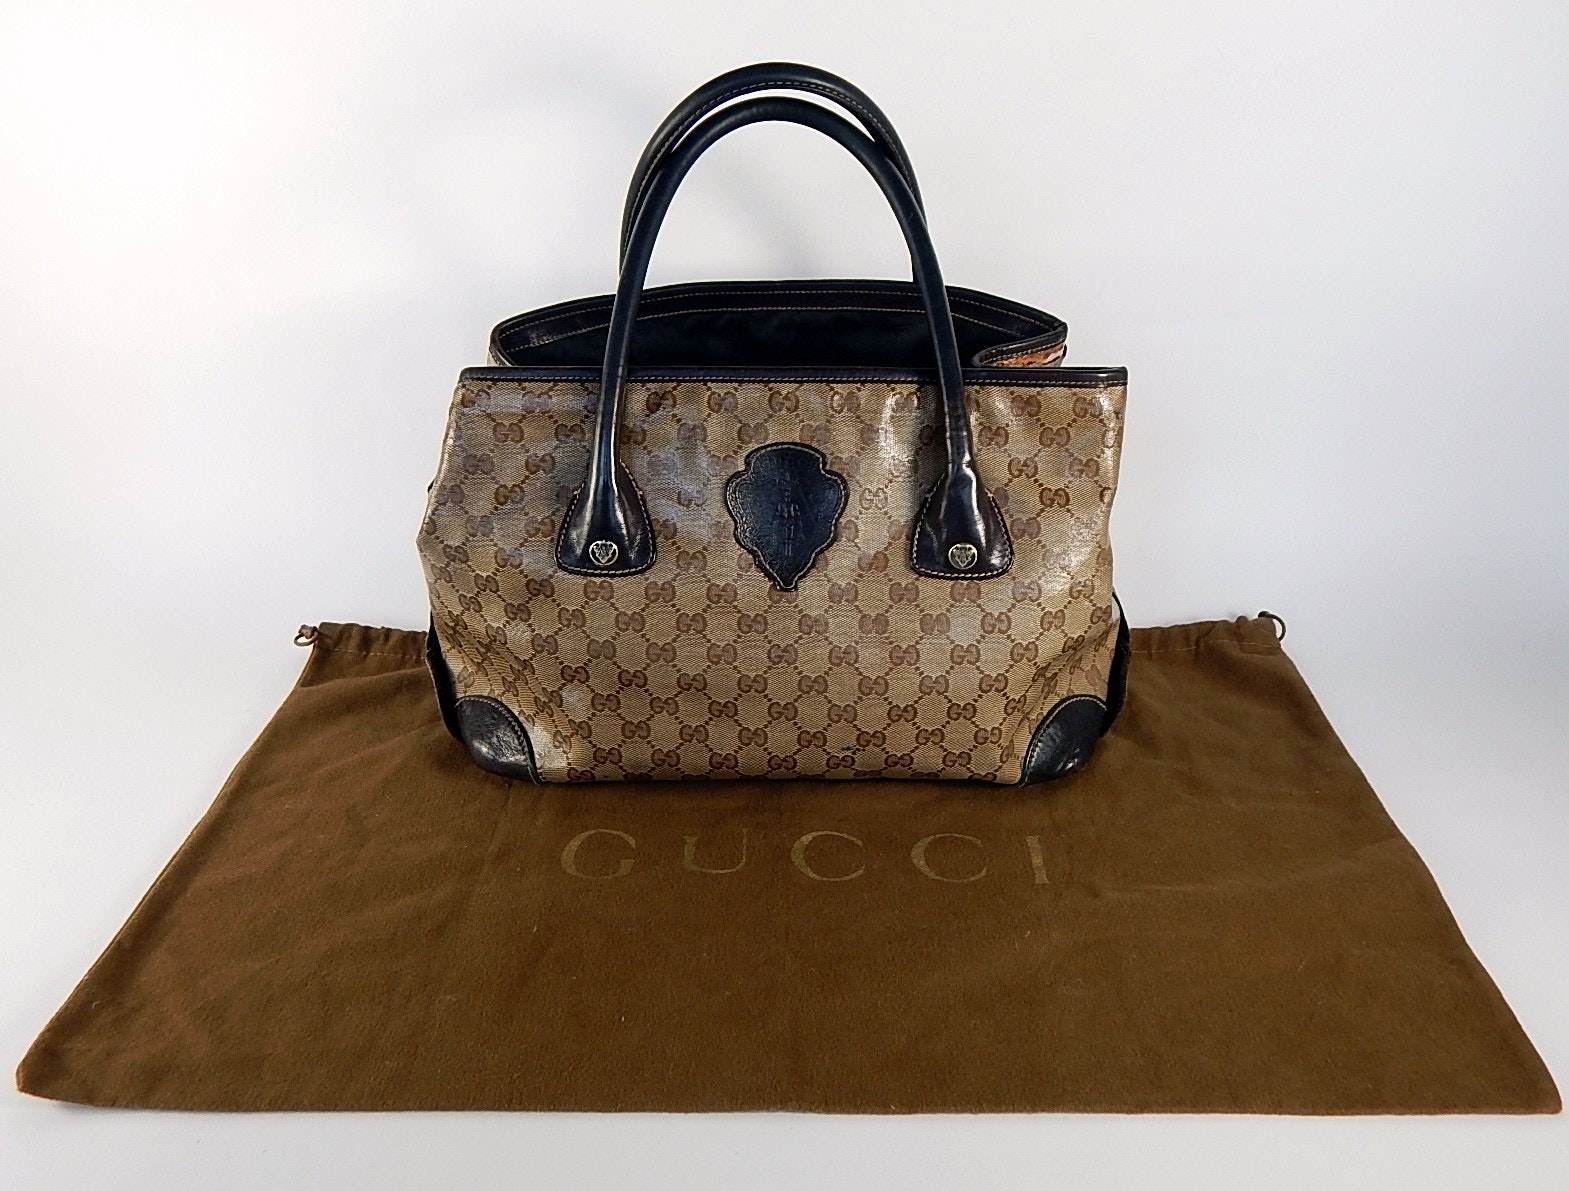 Large Gucci Tote Handbag